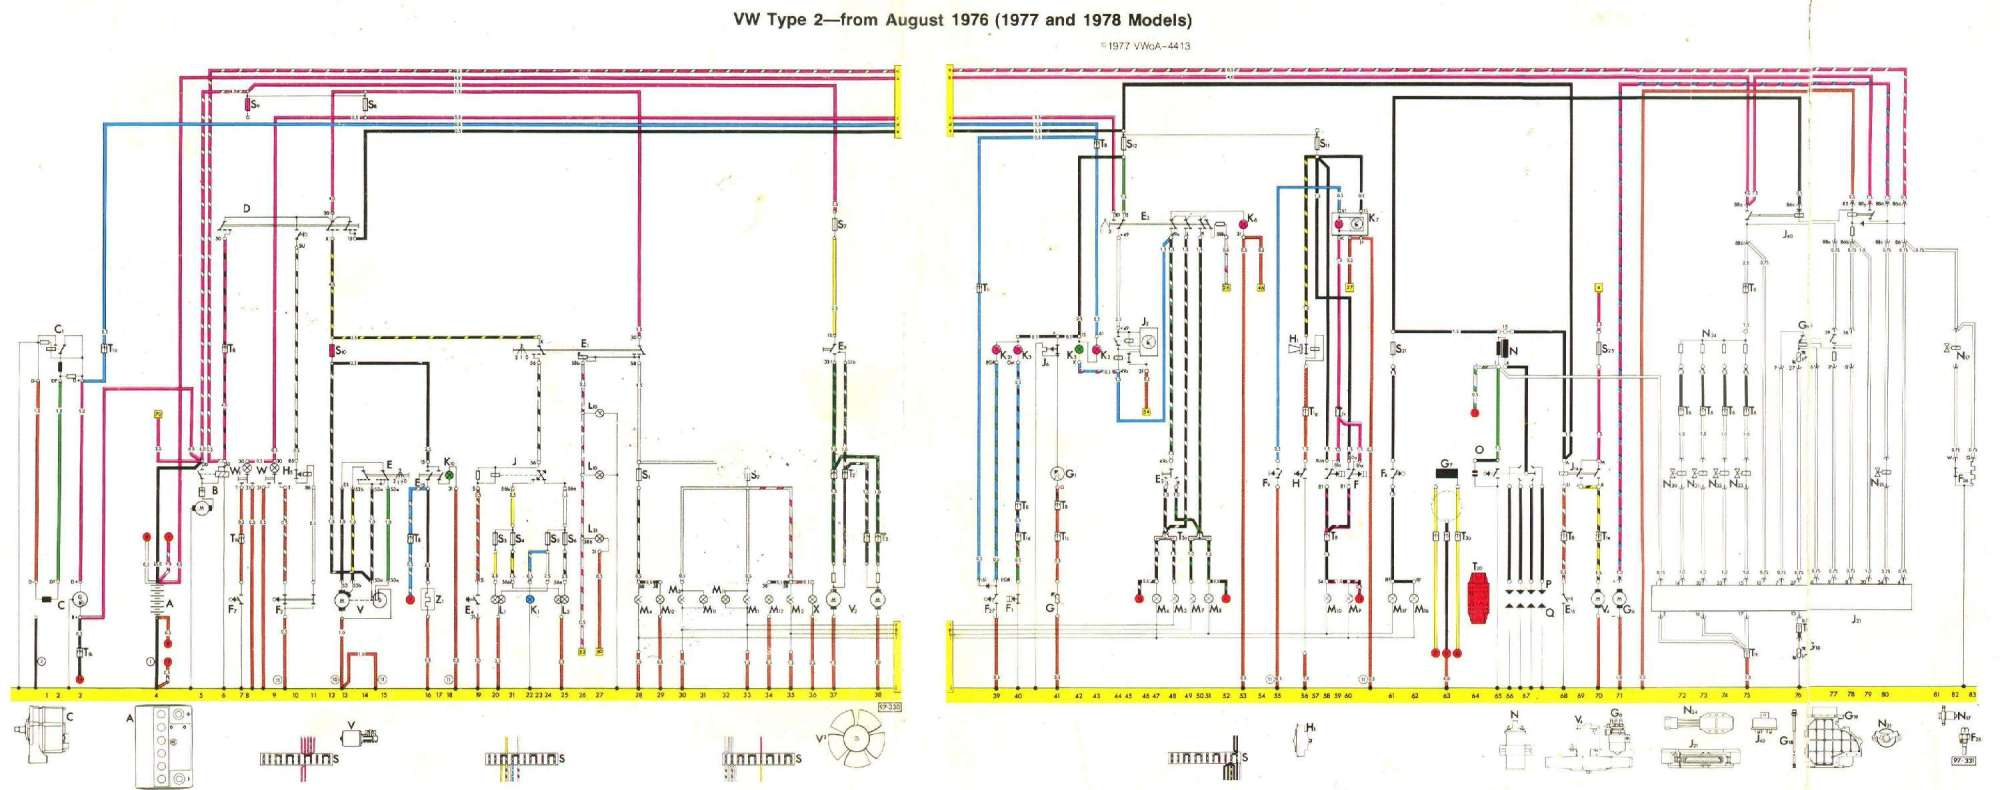 hight resolution of 1972 vw type 2 engine tin diagram